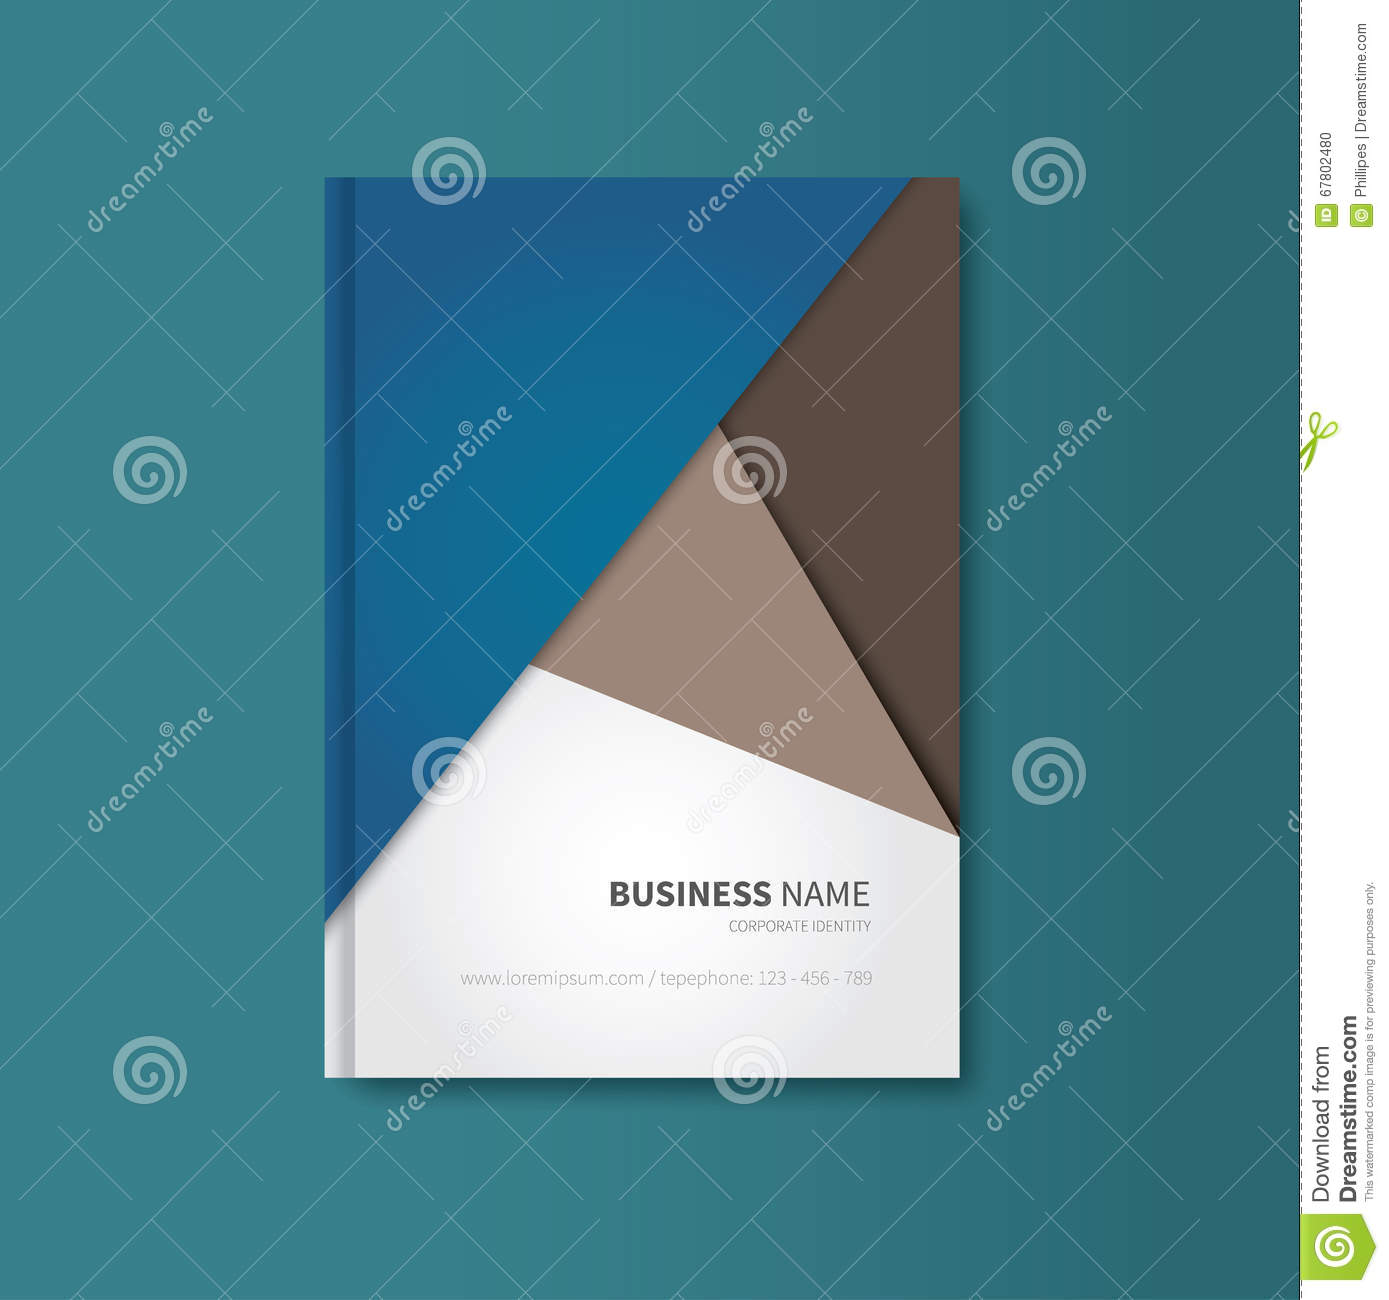 Book Cover Material Xl : Professional book in material design stock vector